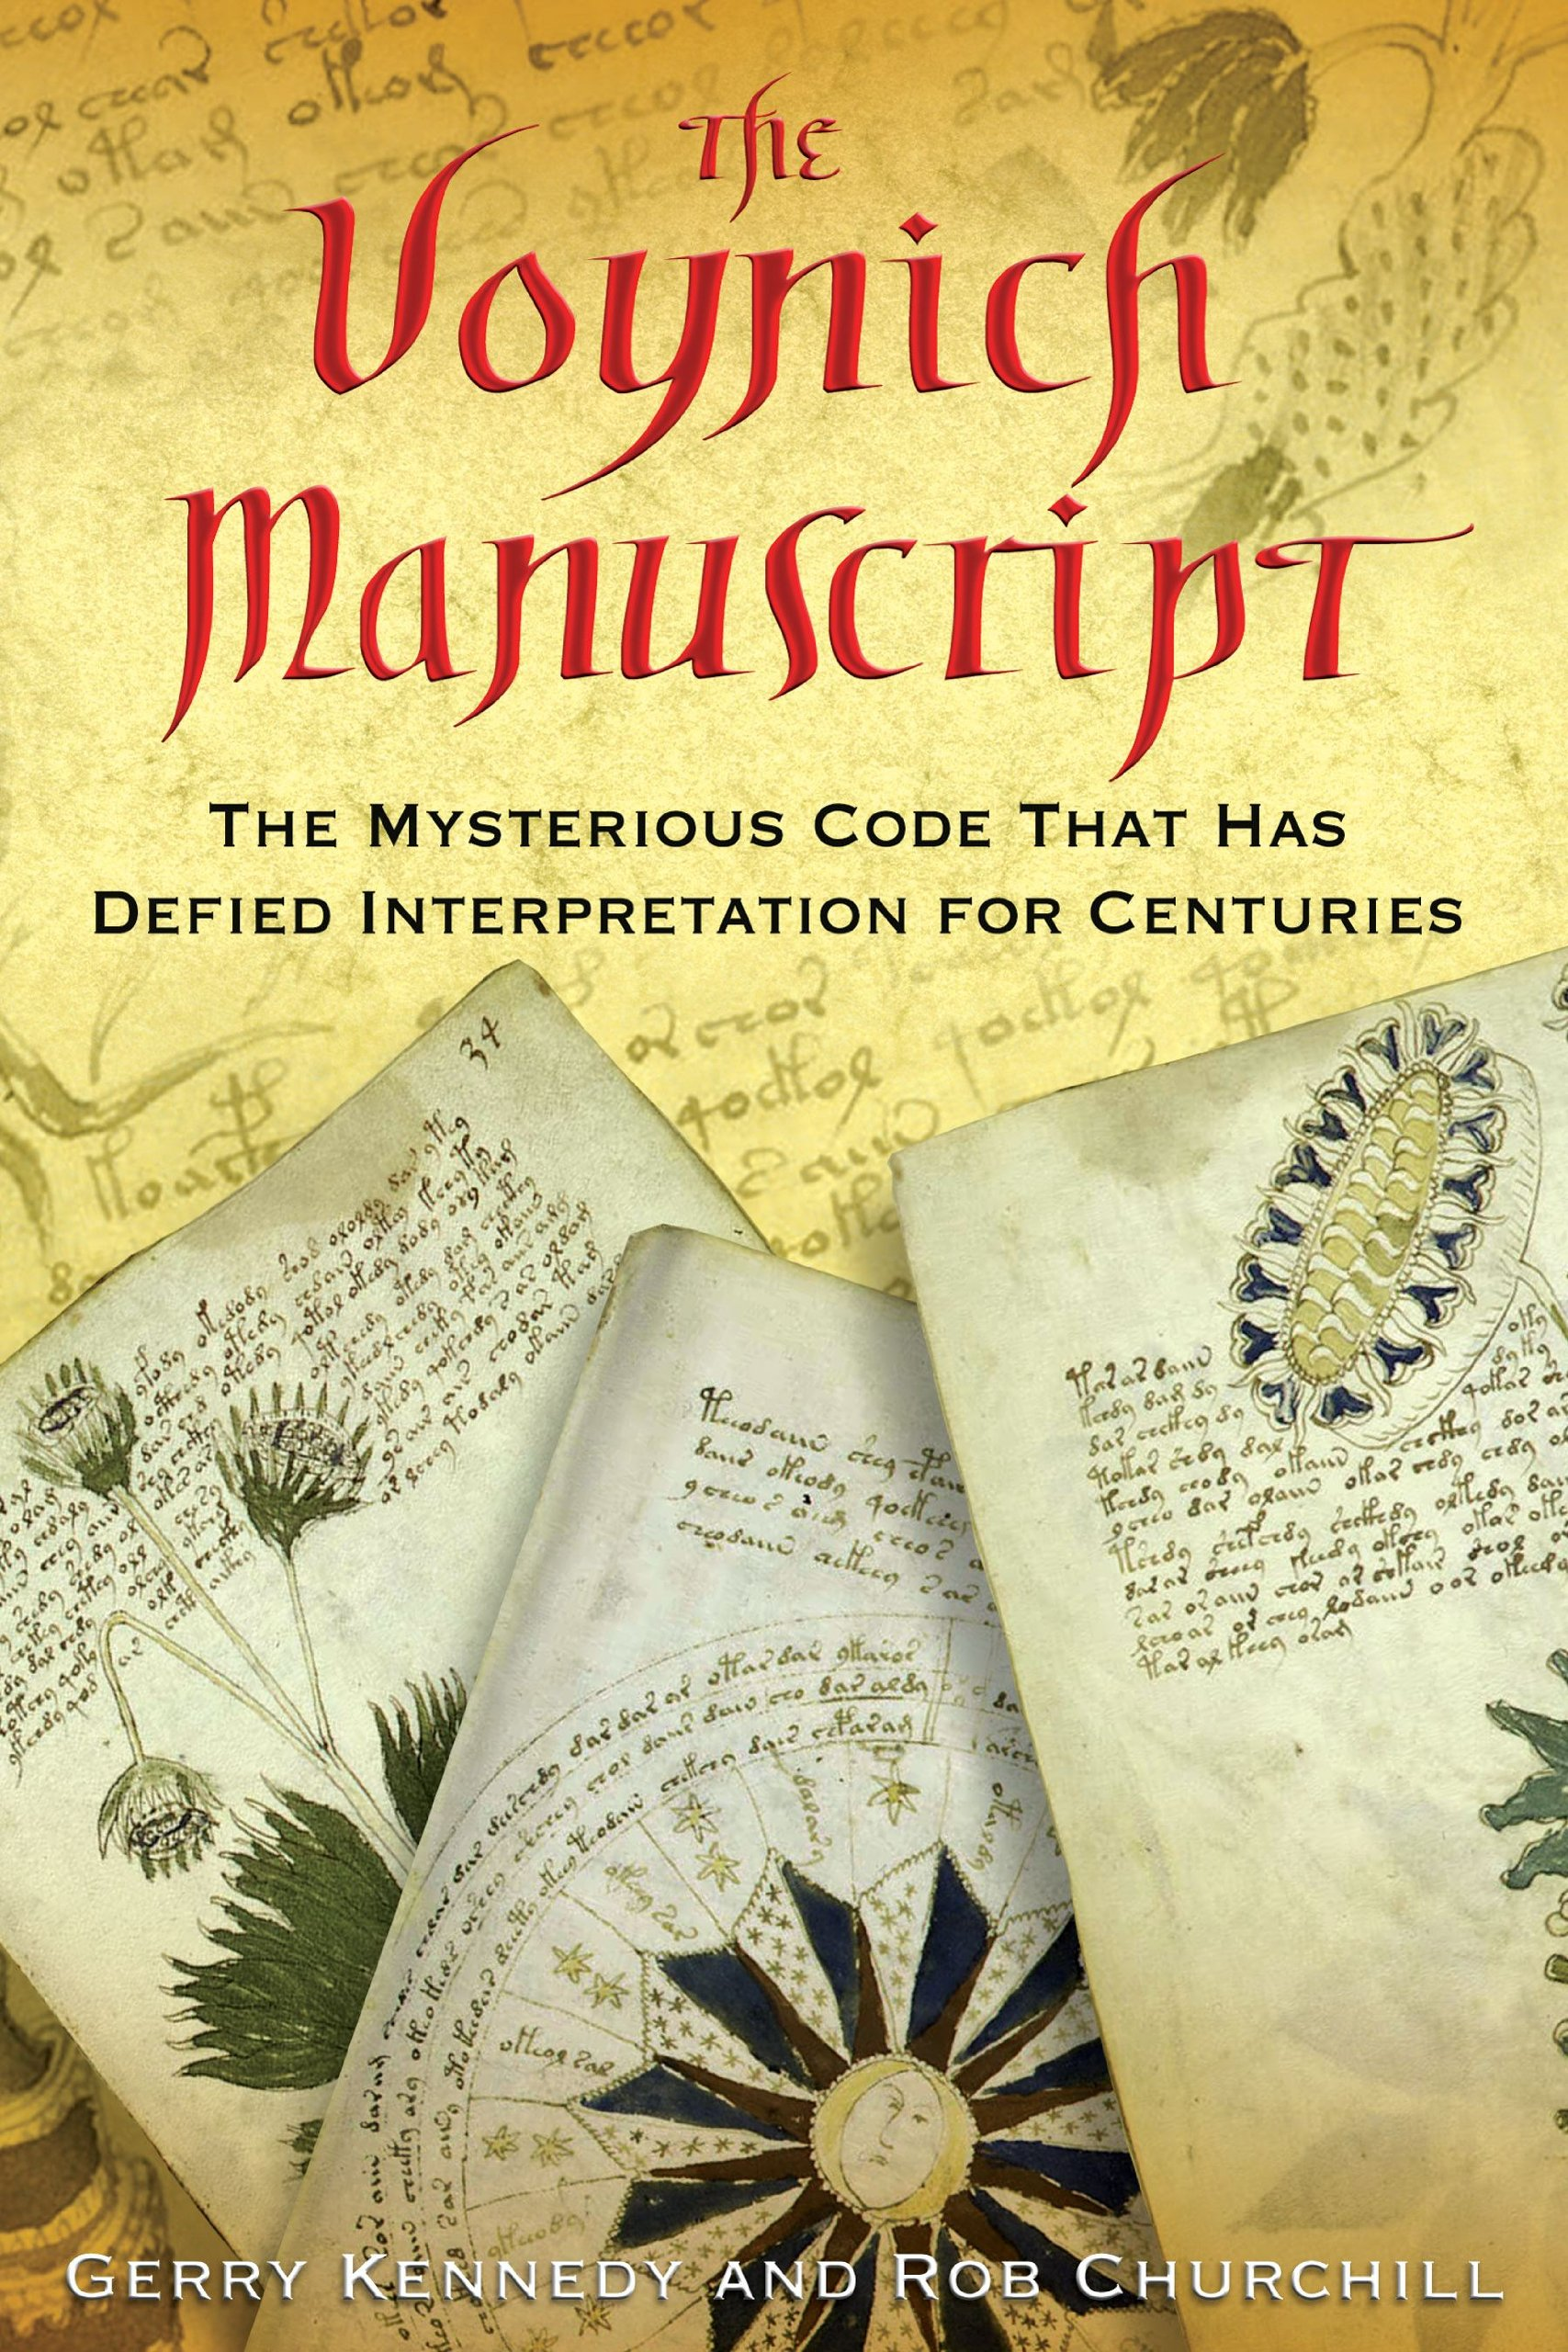 The Voynich Manuscript: The Mysterious Code That